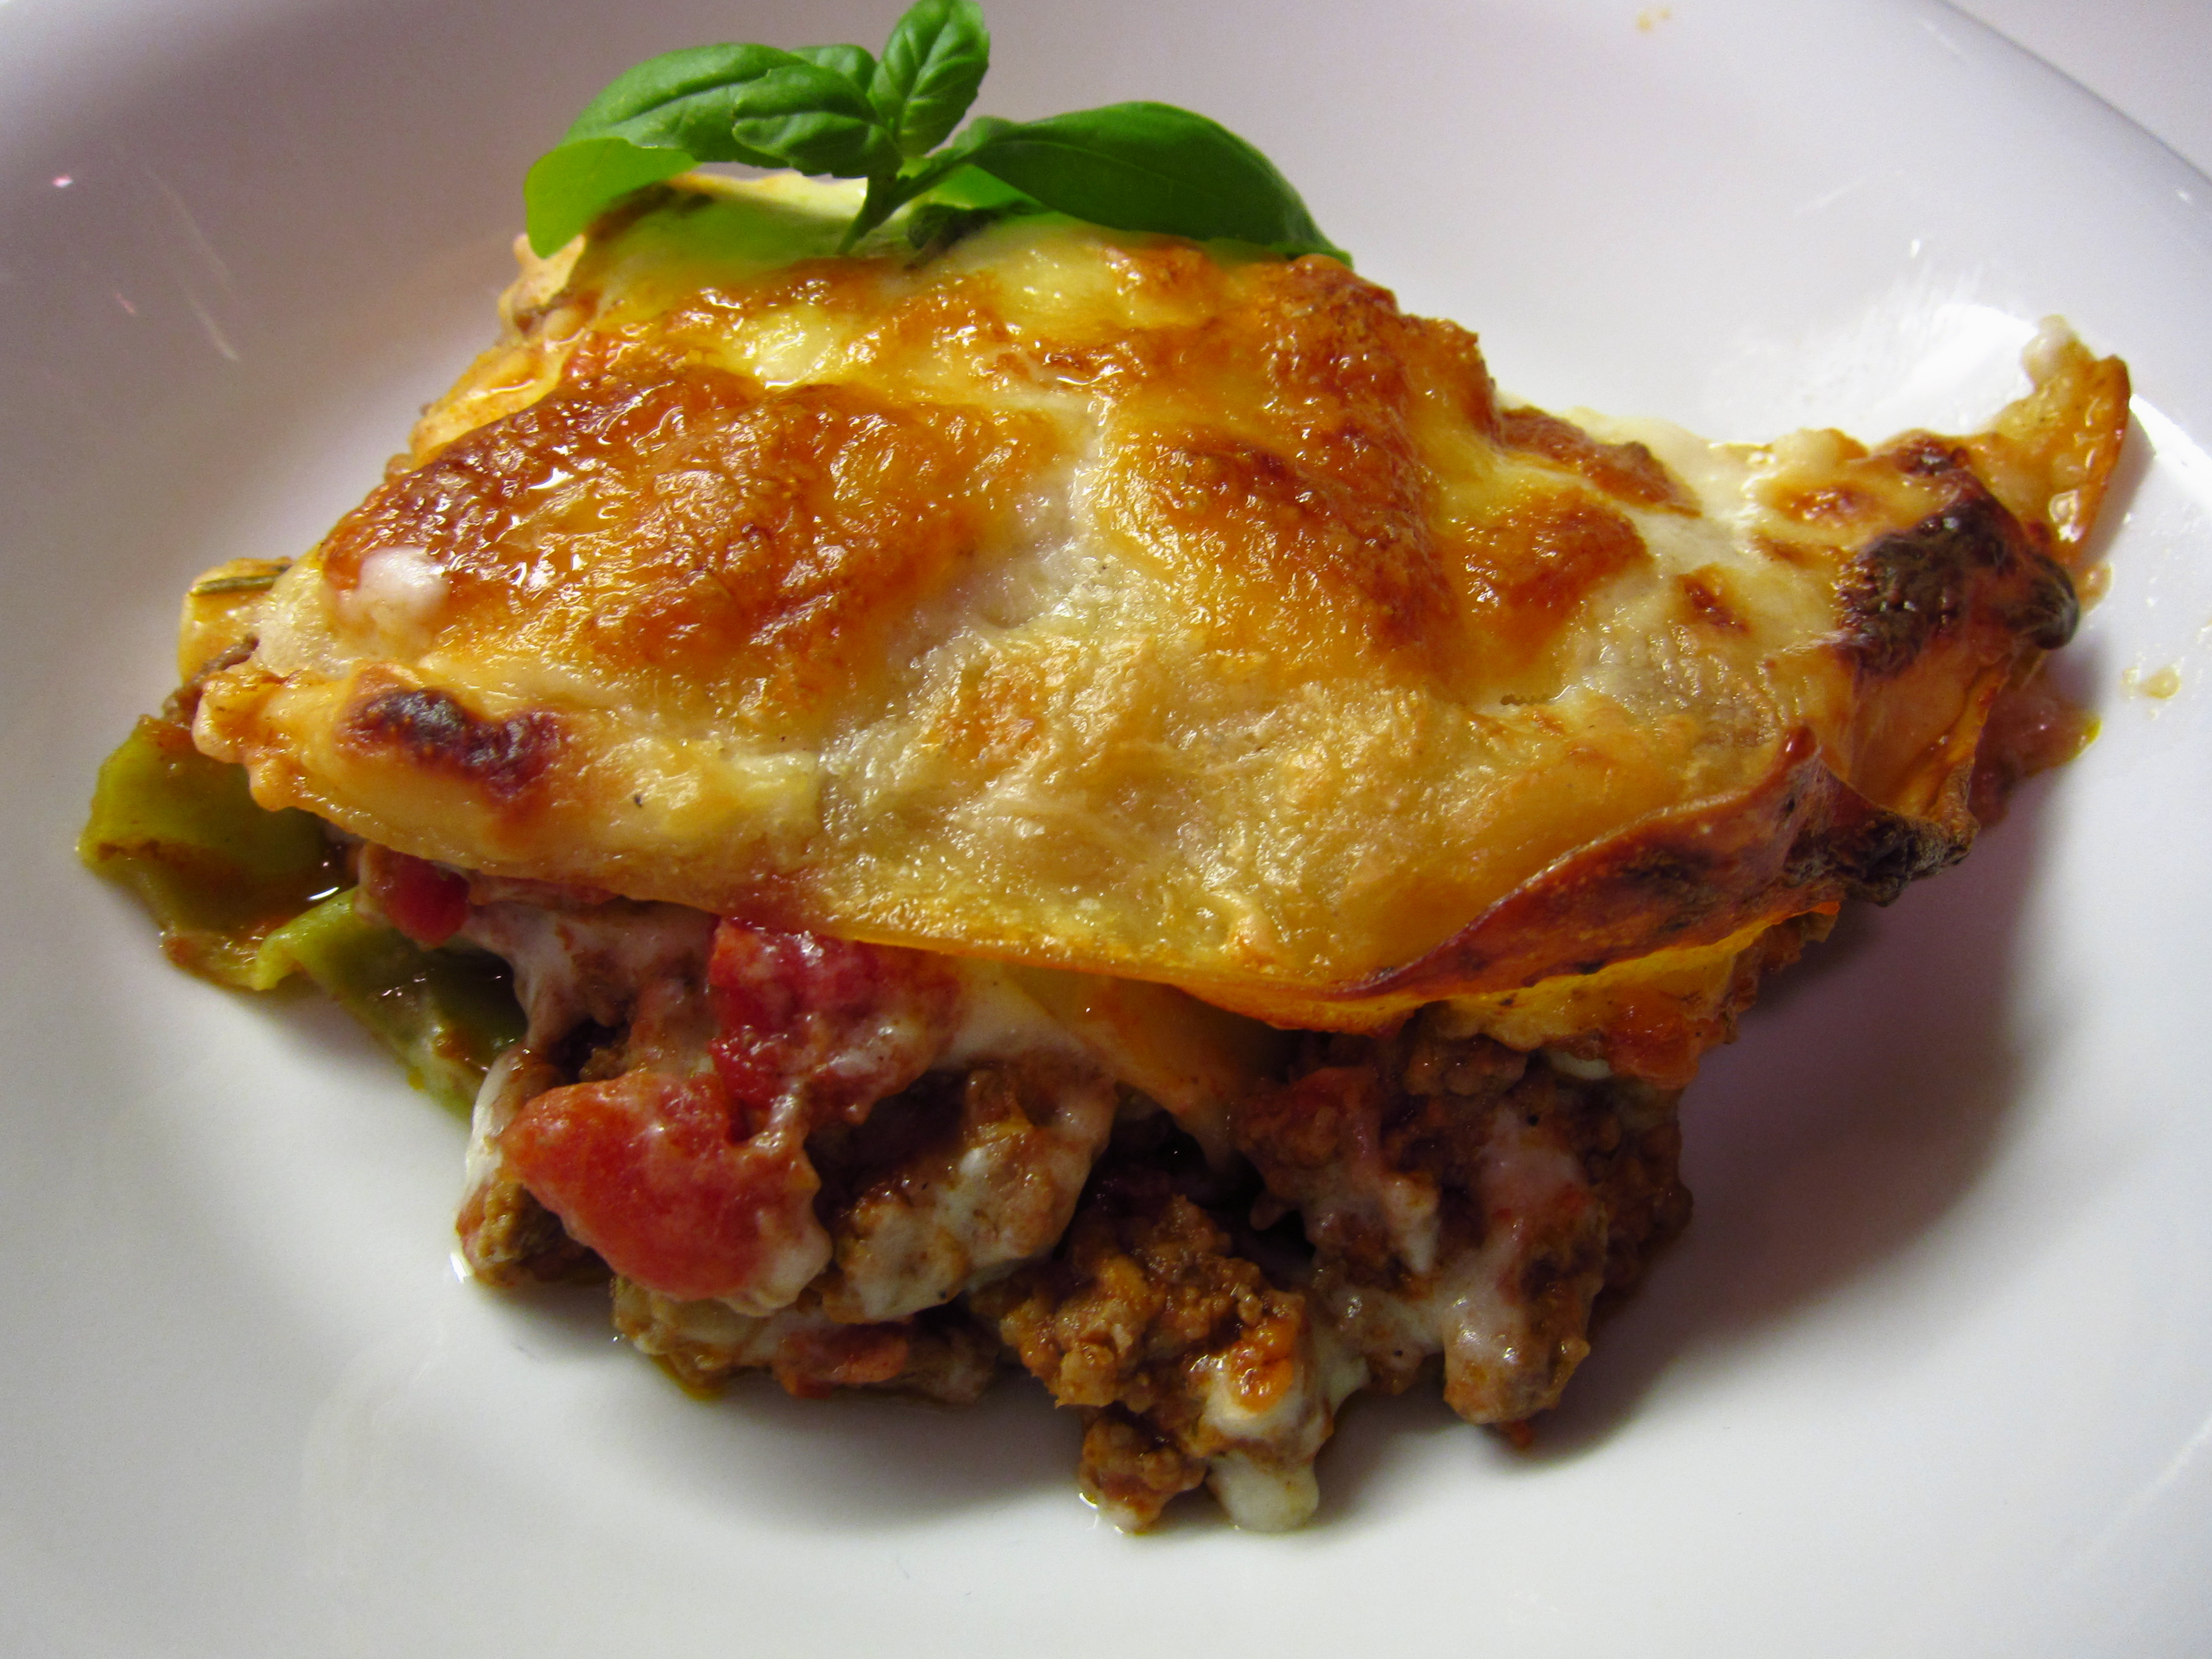 Mikee Speciale: Lasagne alla Bolognese is worth the wait - Melting ...